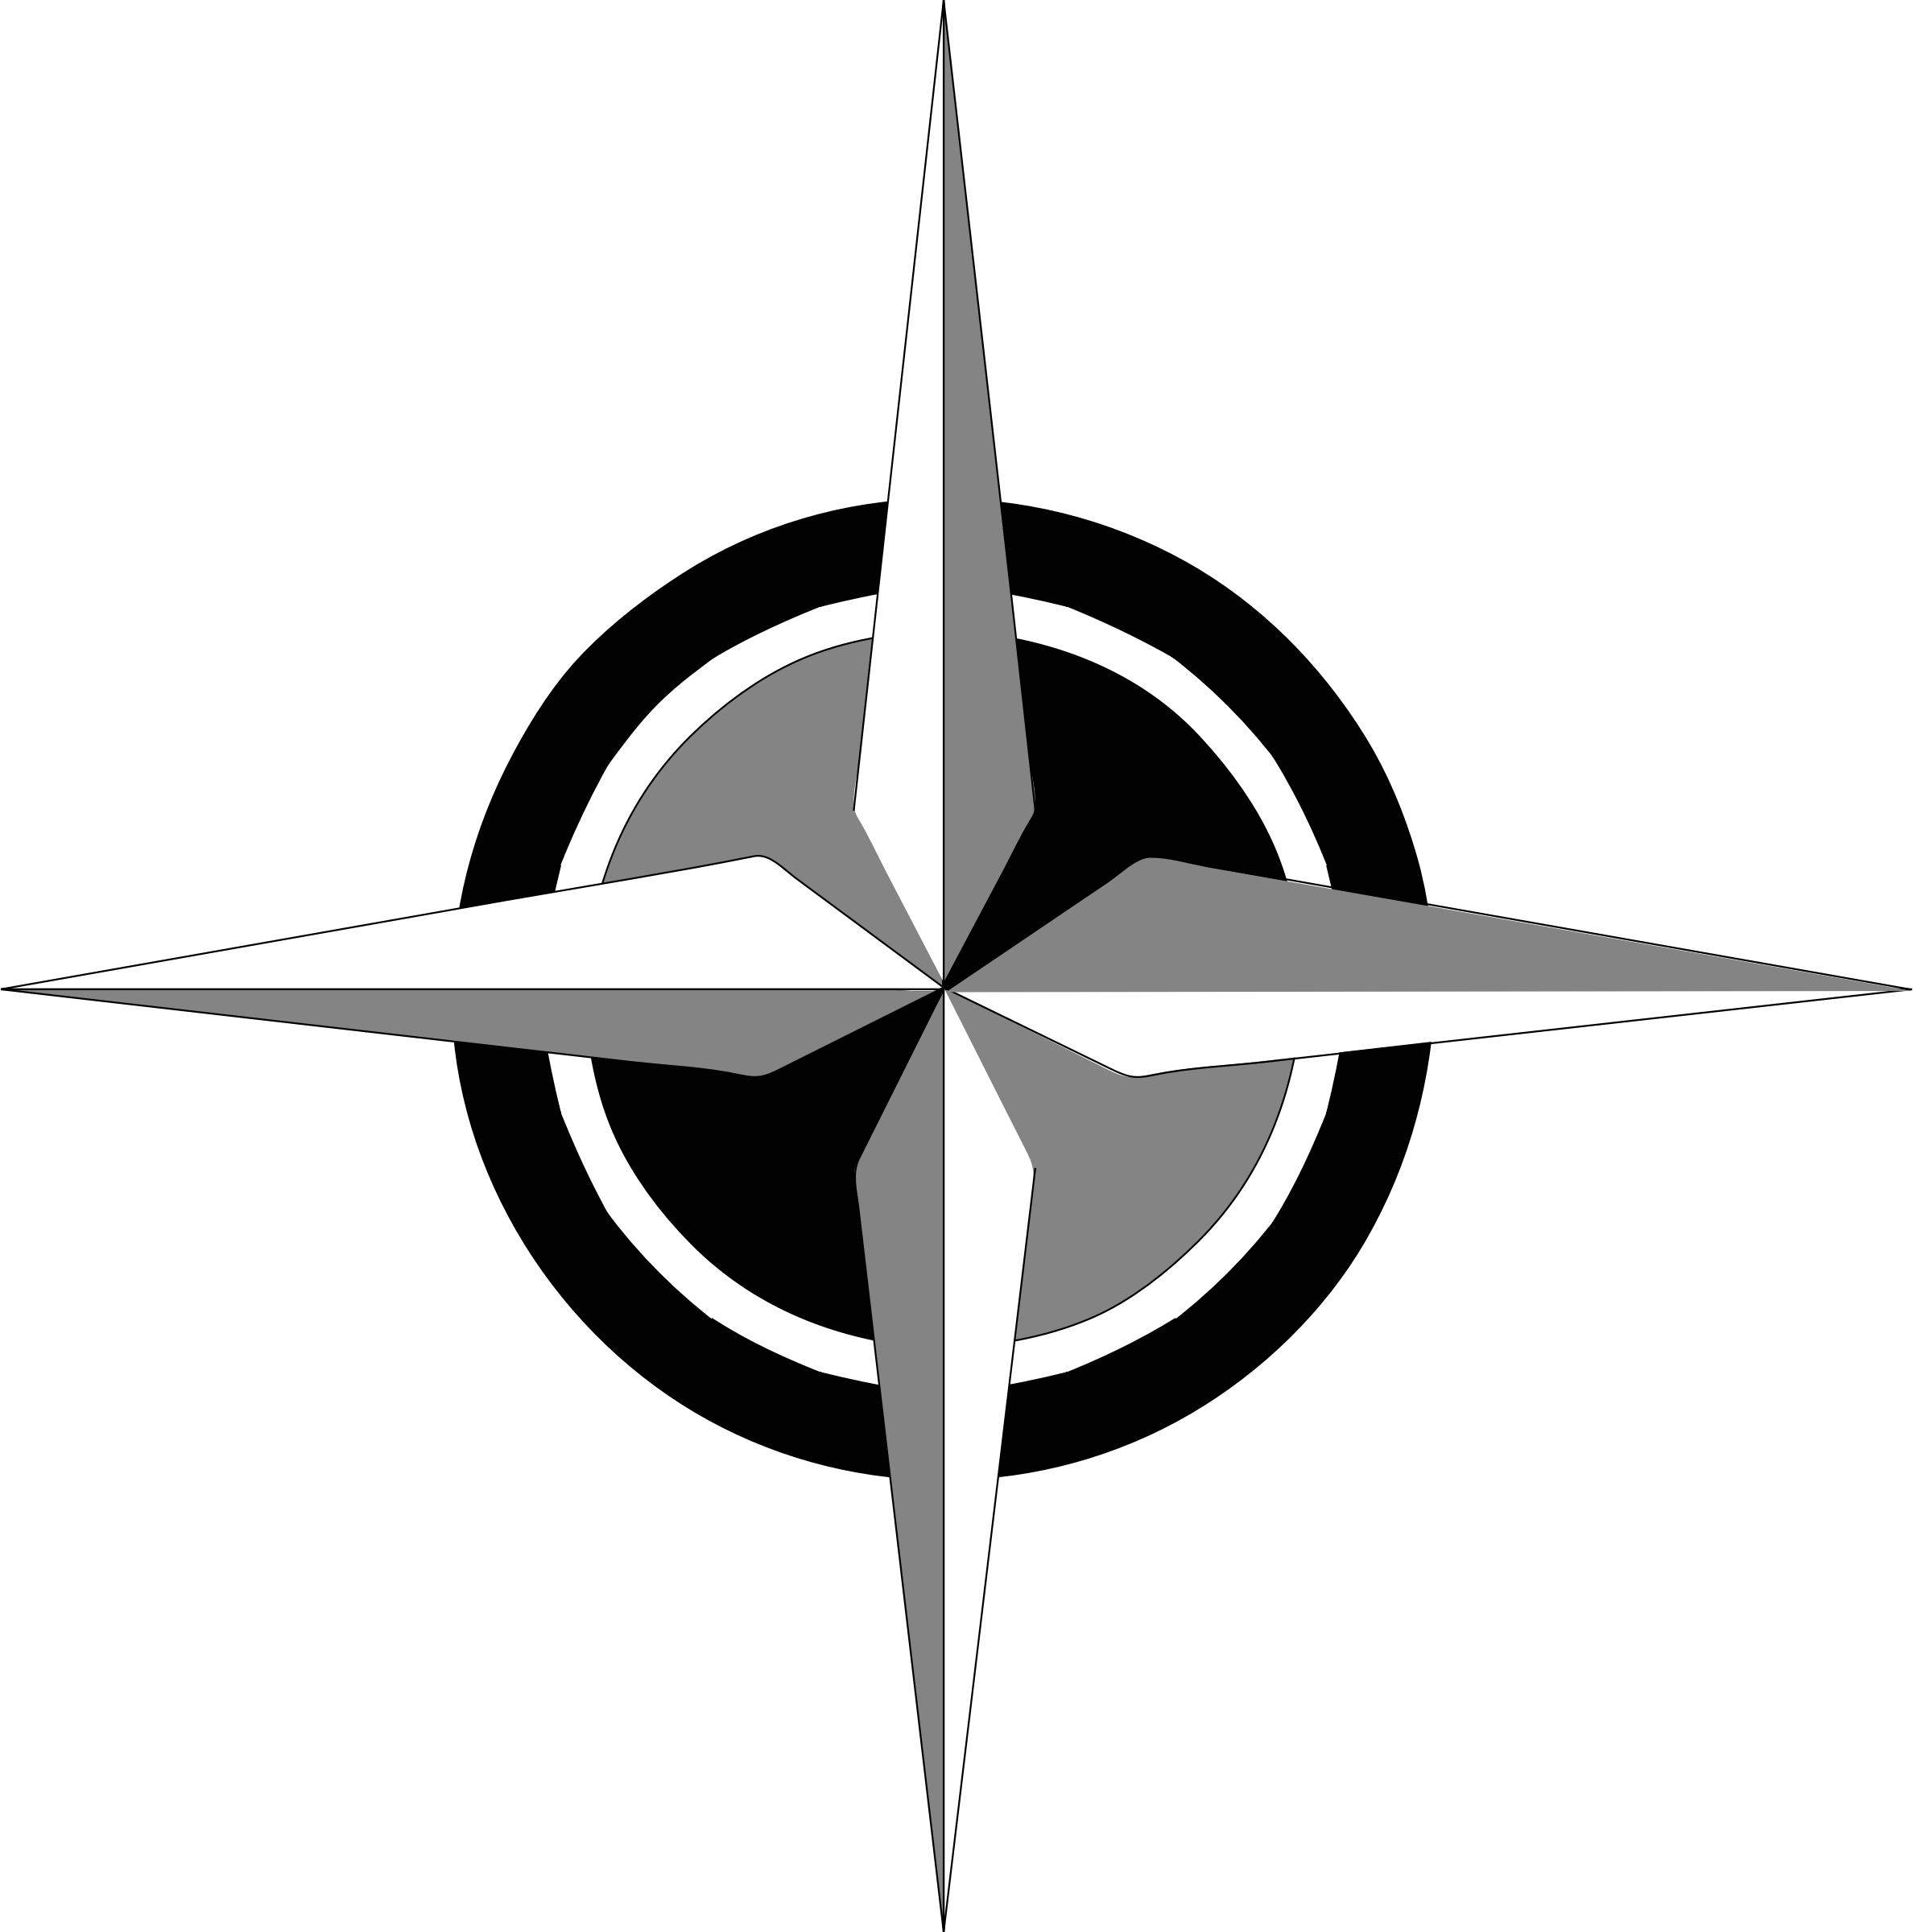 compass rose 1 by Anonymous